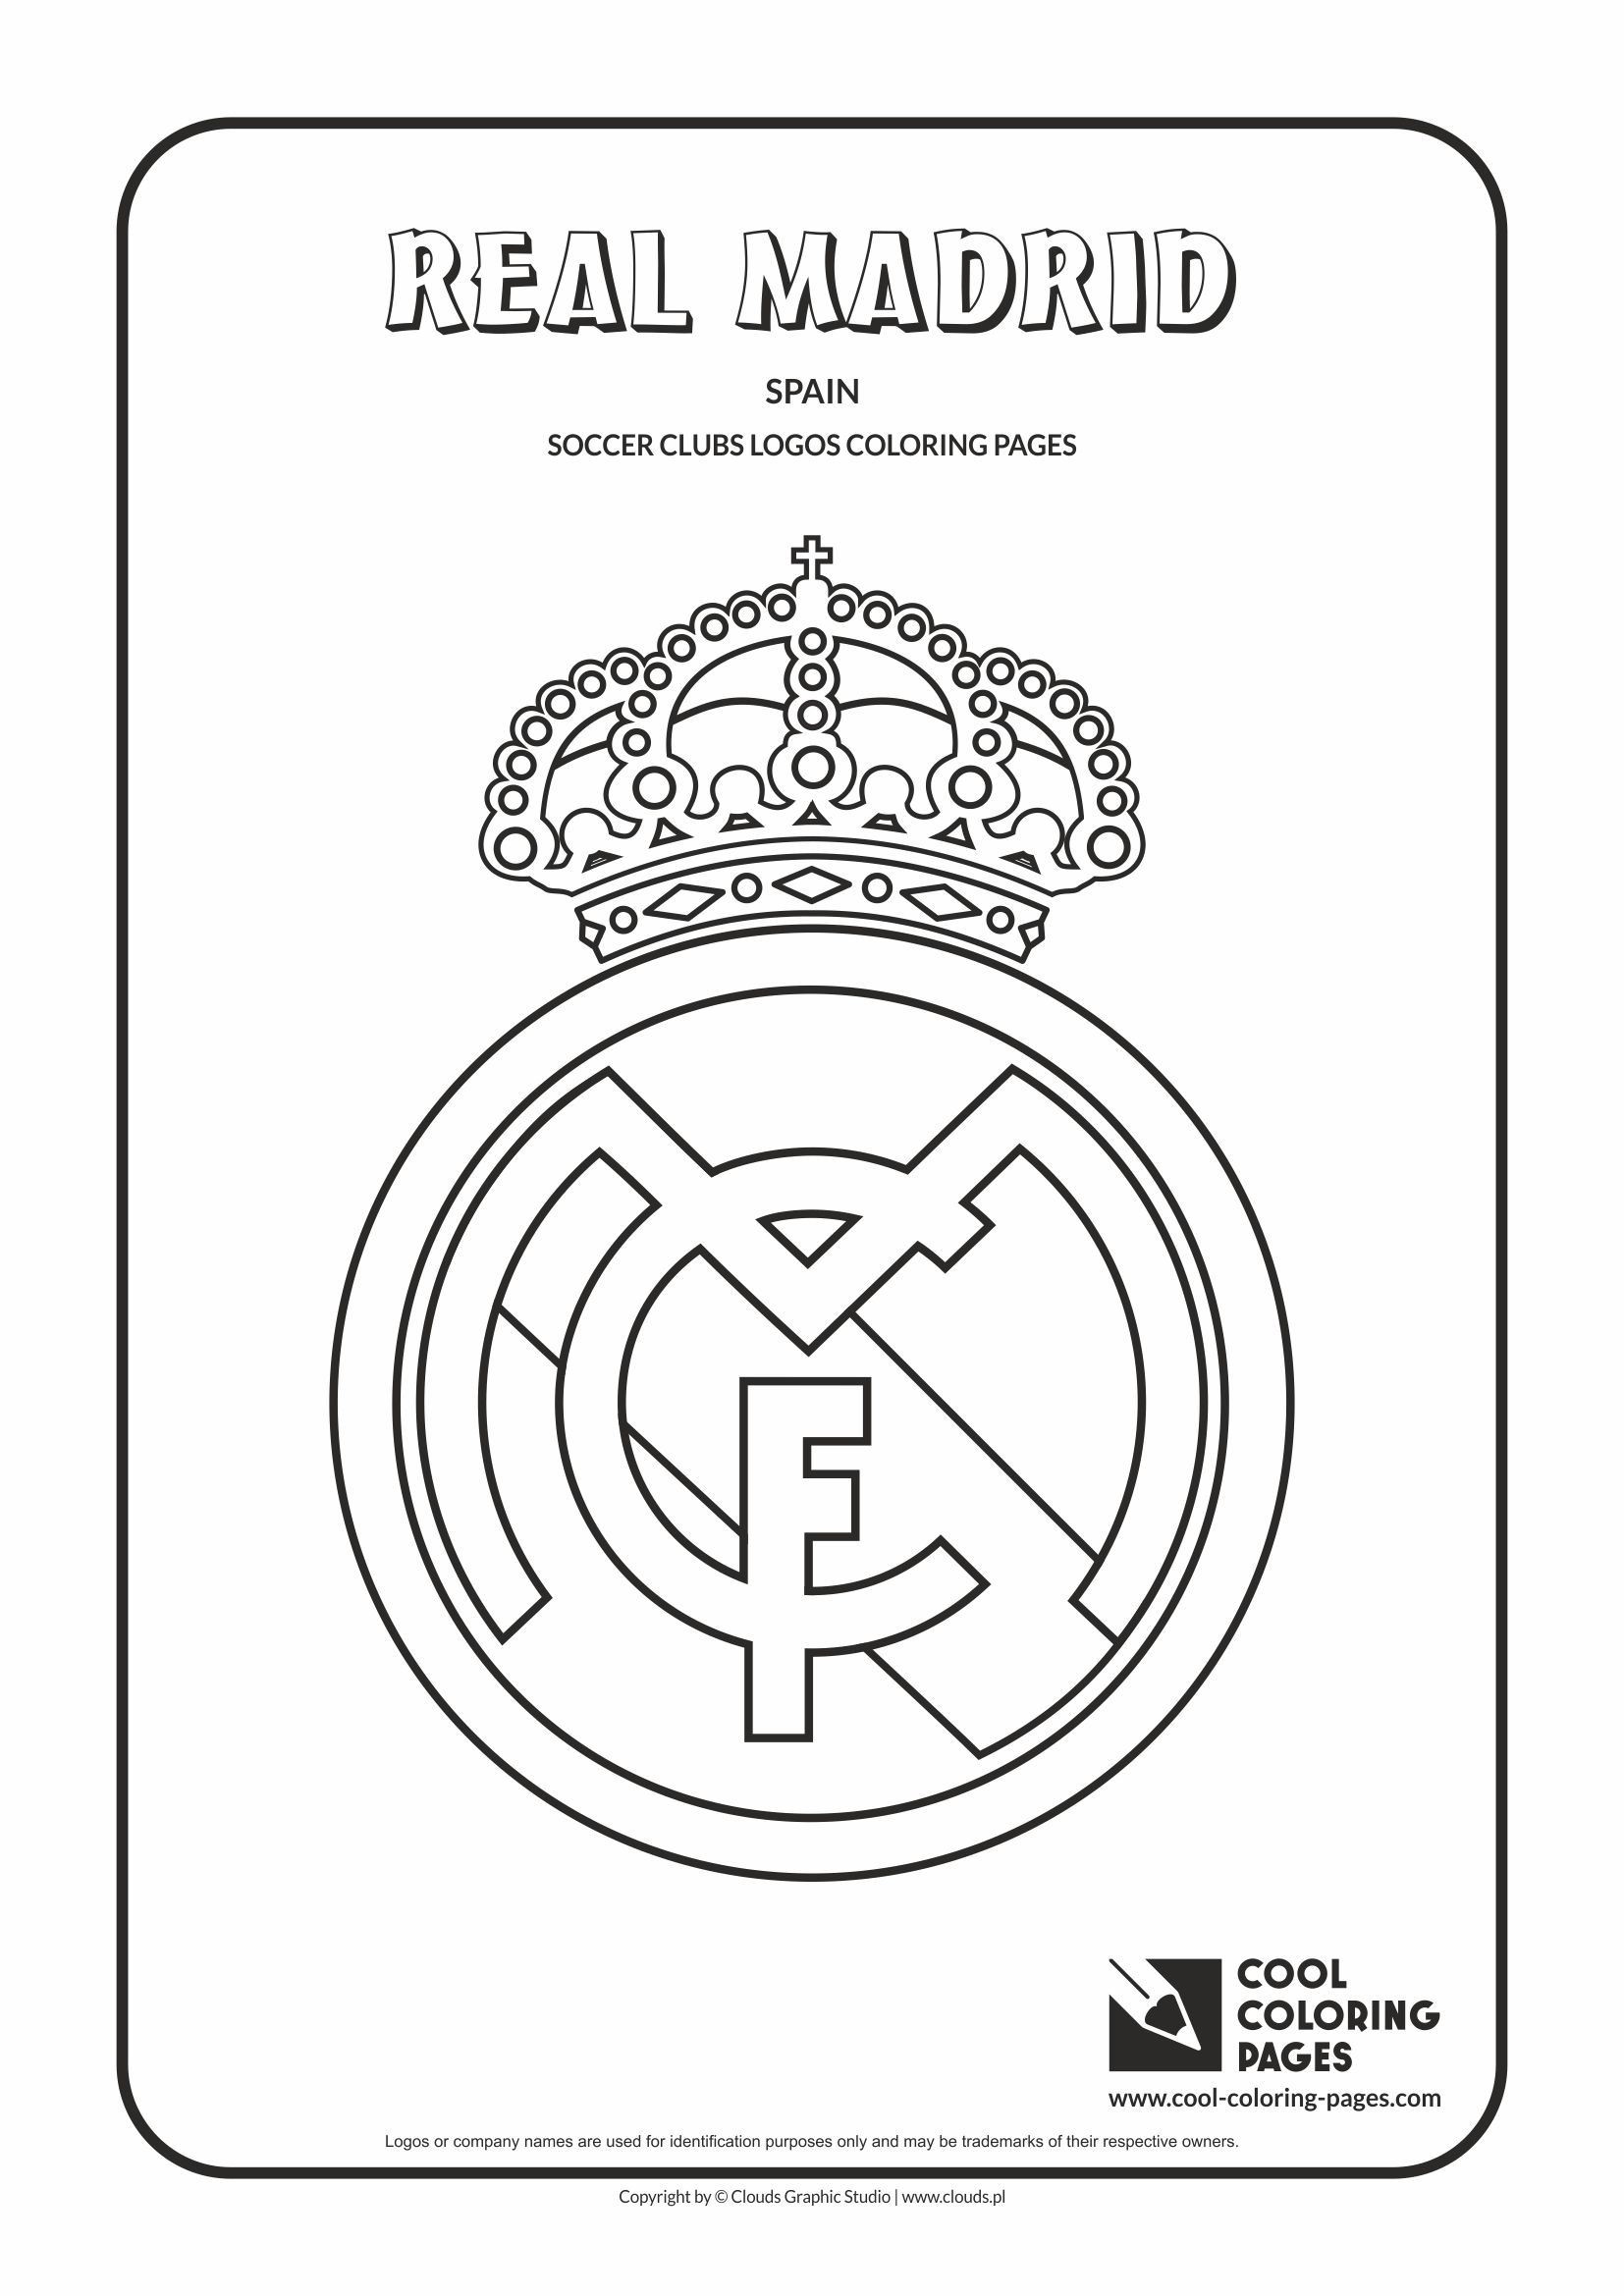 Cool Coloring Pages Soccer clubs logos - Cool Coloring Pages | Free ...